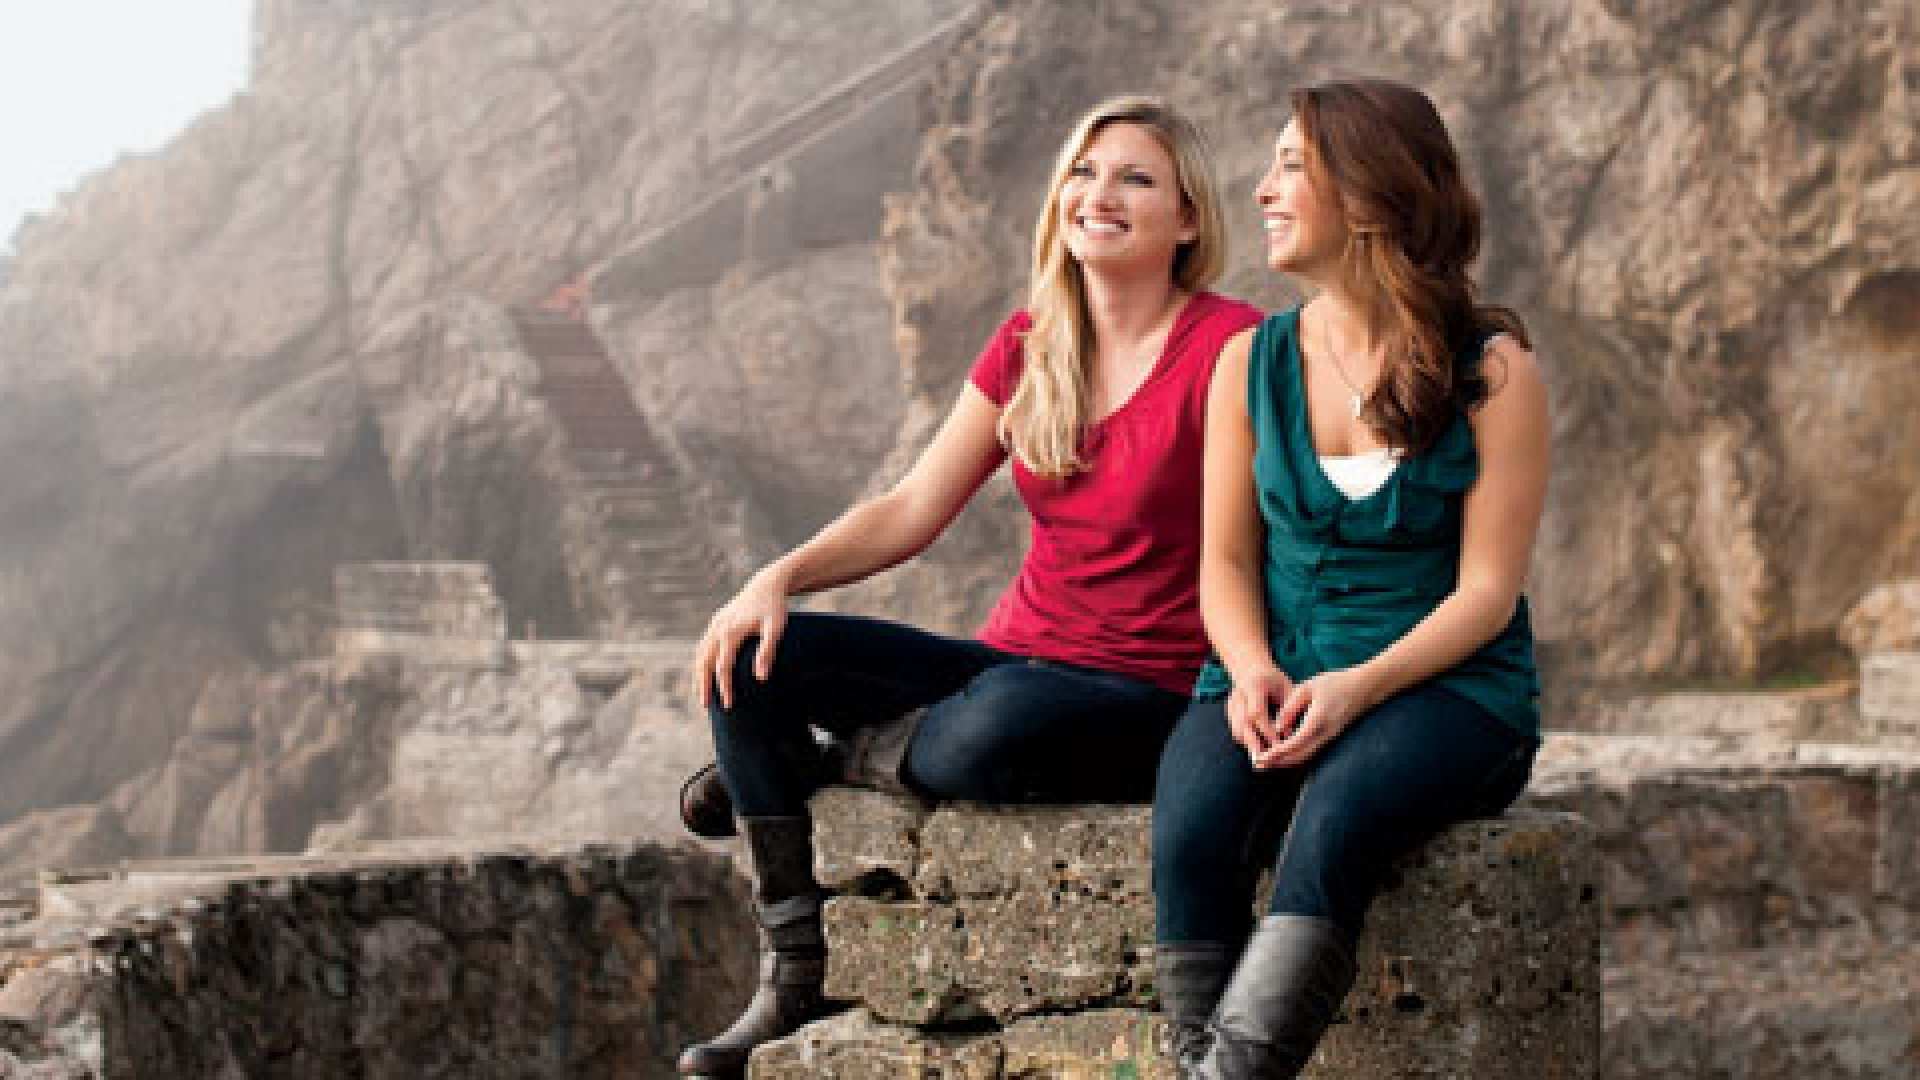 <b>Far From the Madding Crowd</b> Vayable's co-founders, Shelly Roche (left) and Jamie Wong, want to take tourists where guide books don't, like the old Sutro Baths here in San Francisco.